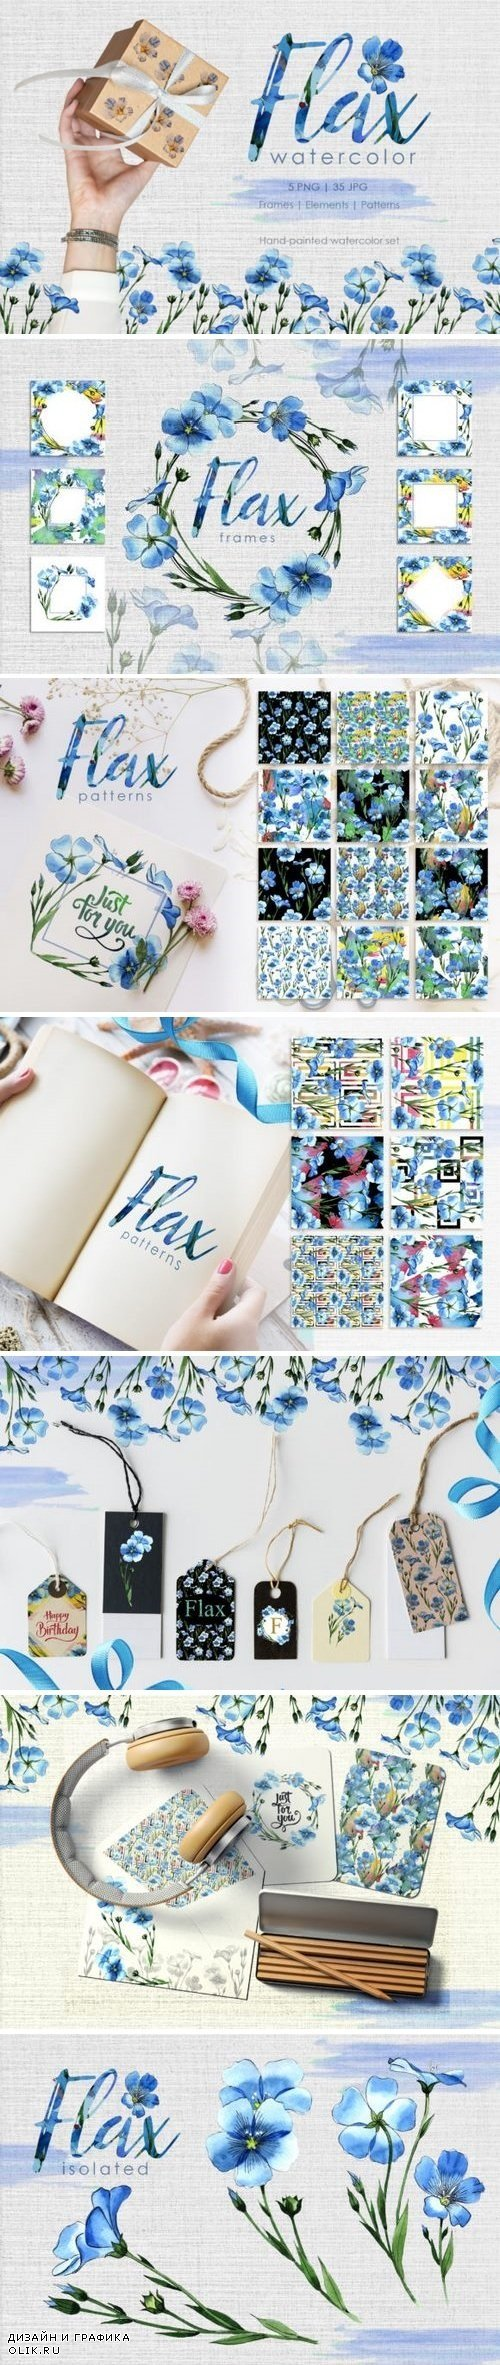 Flax blue Watercolor png - 3358680